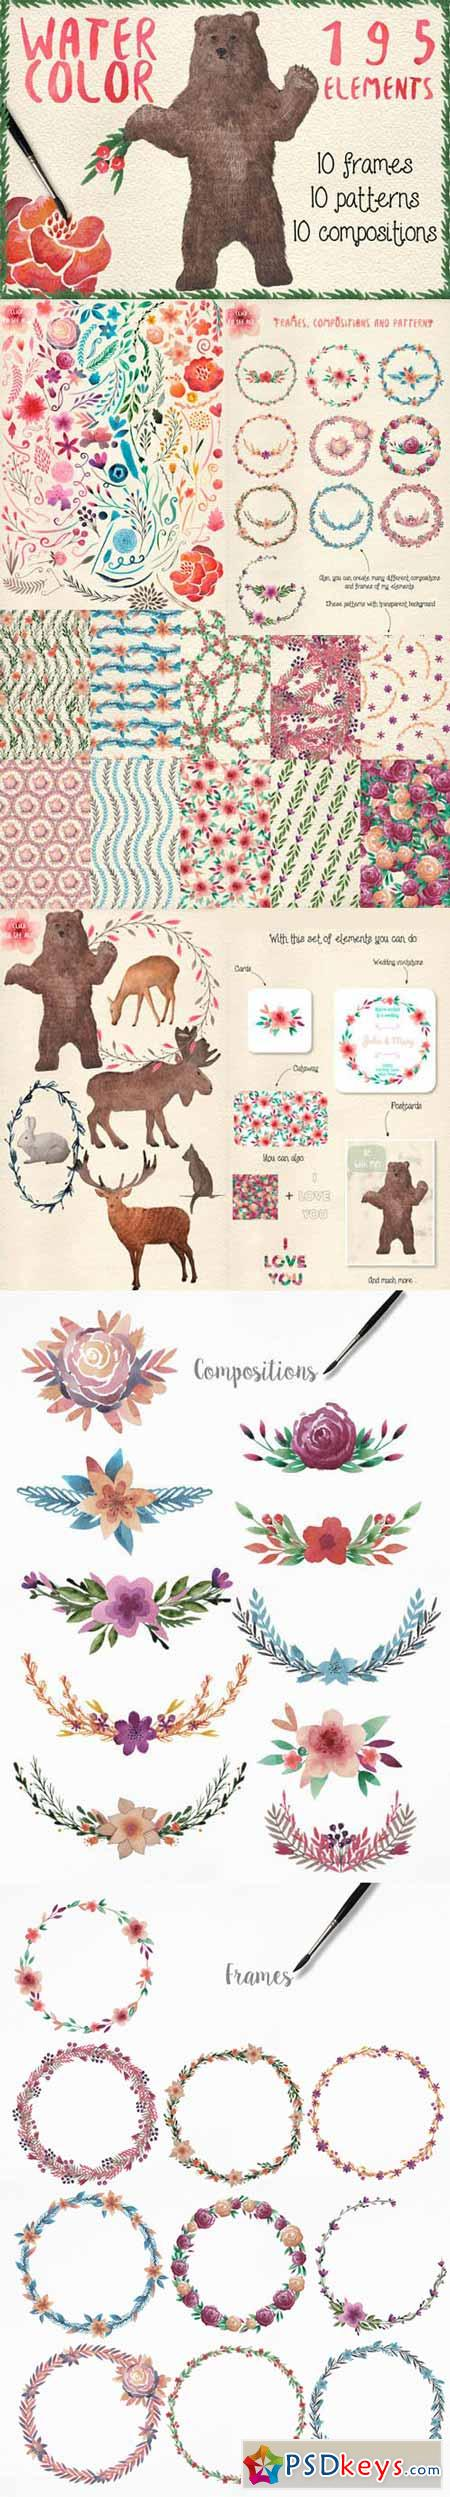 Watercolor frames, patterns, animals 161500